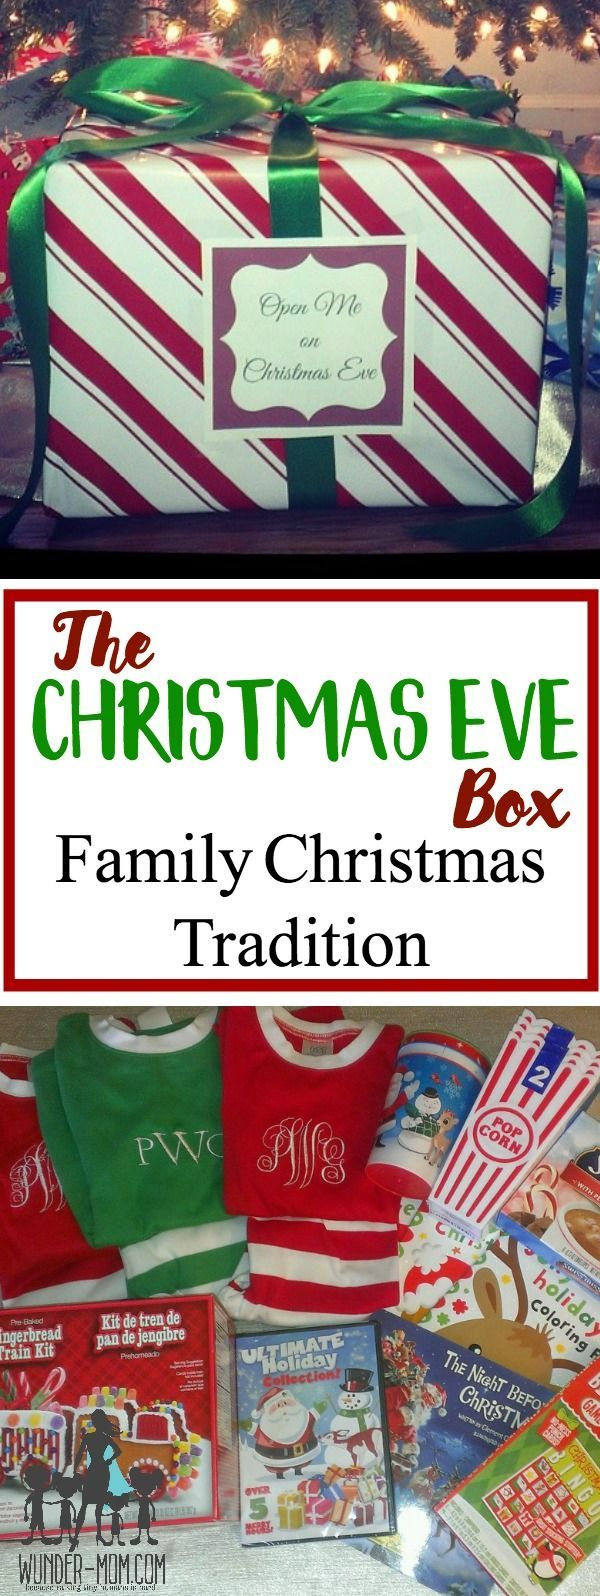 my favorite family christmas tradition!!  combine random acts of kindness with a Christmas eve tradition for this family christmas eve box